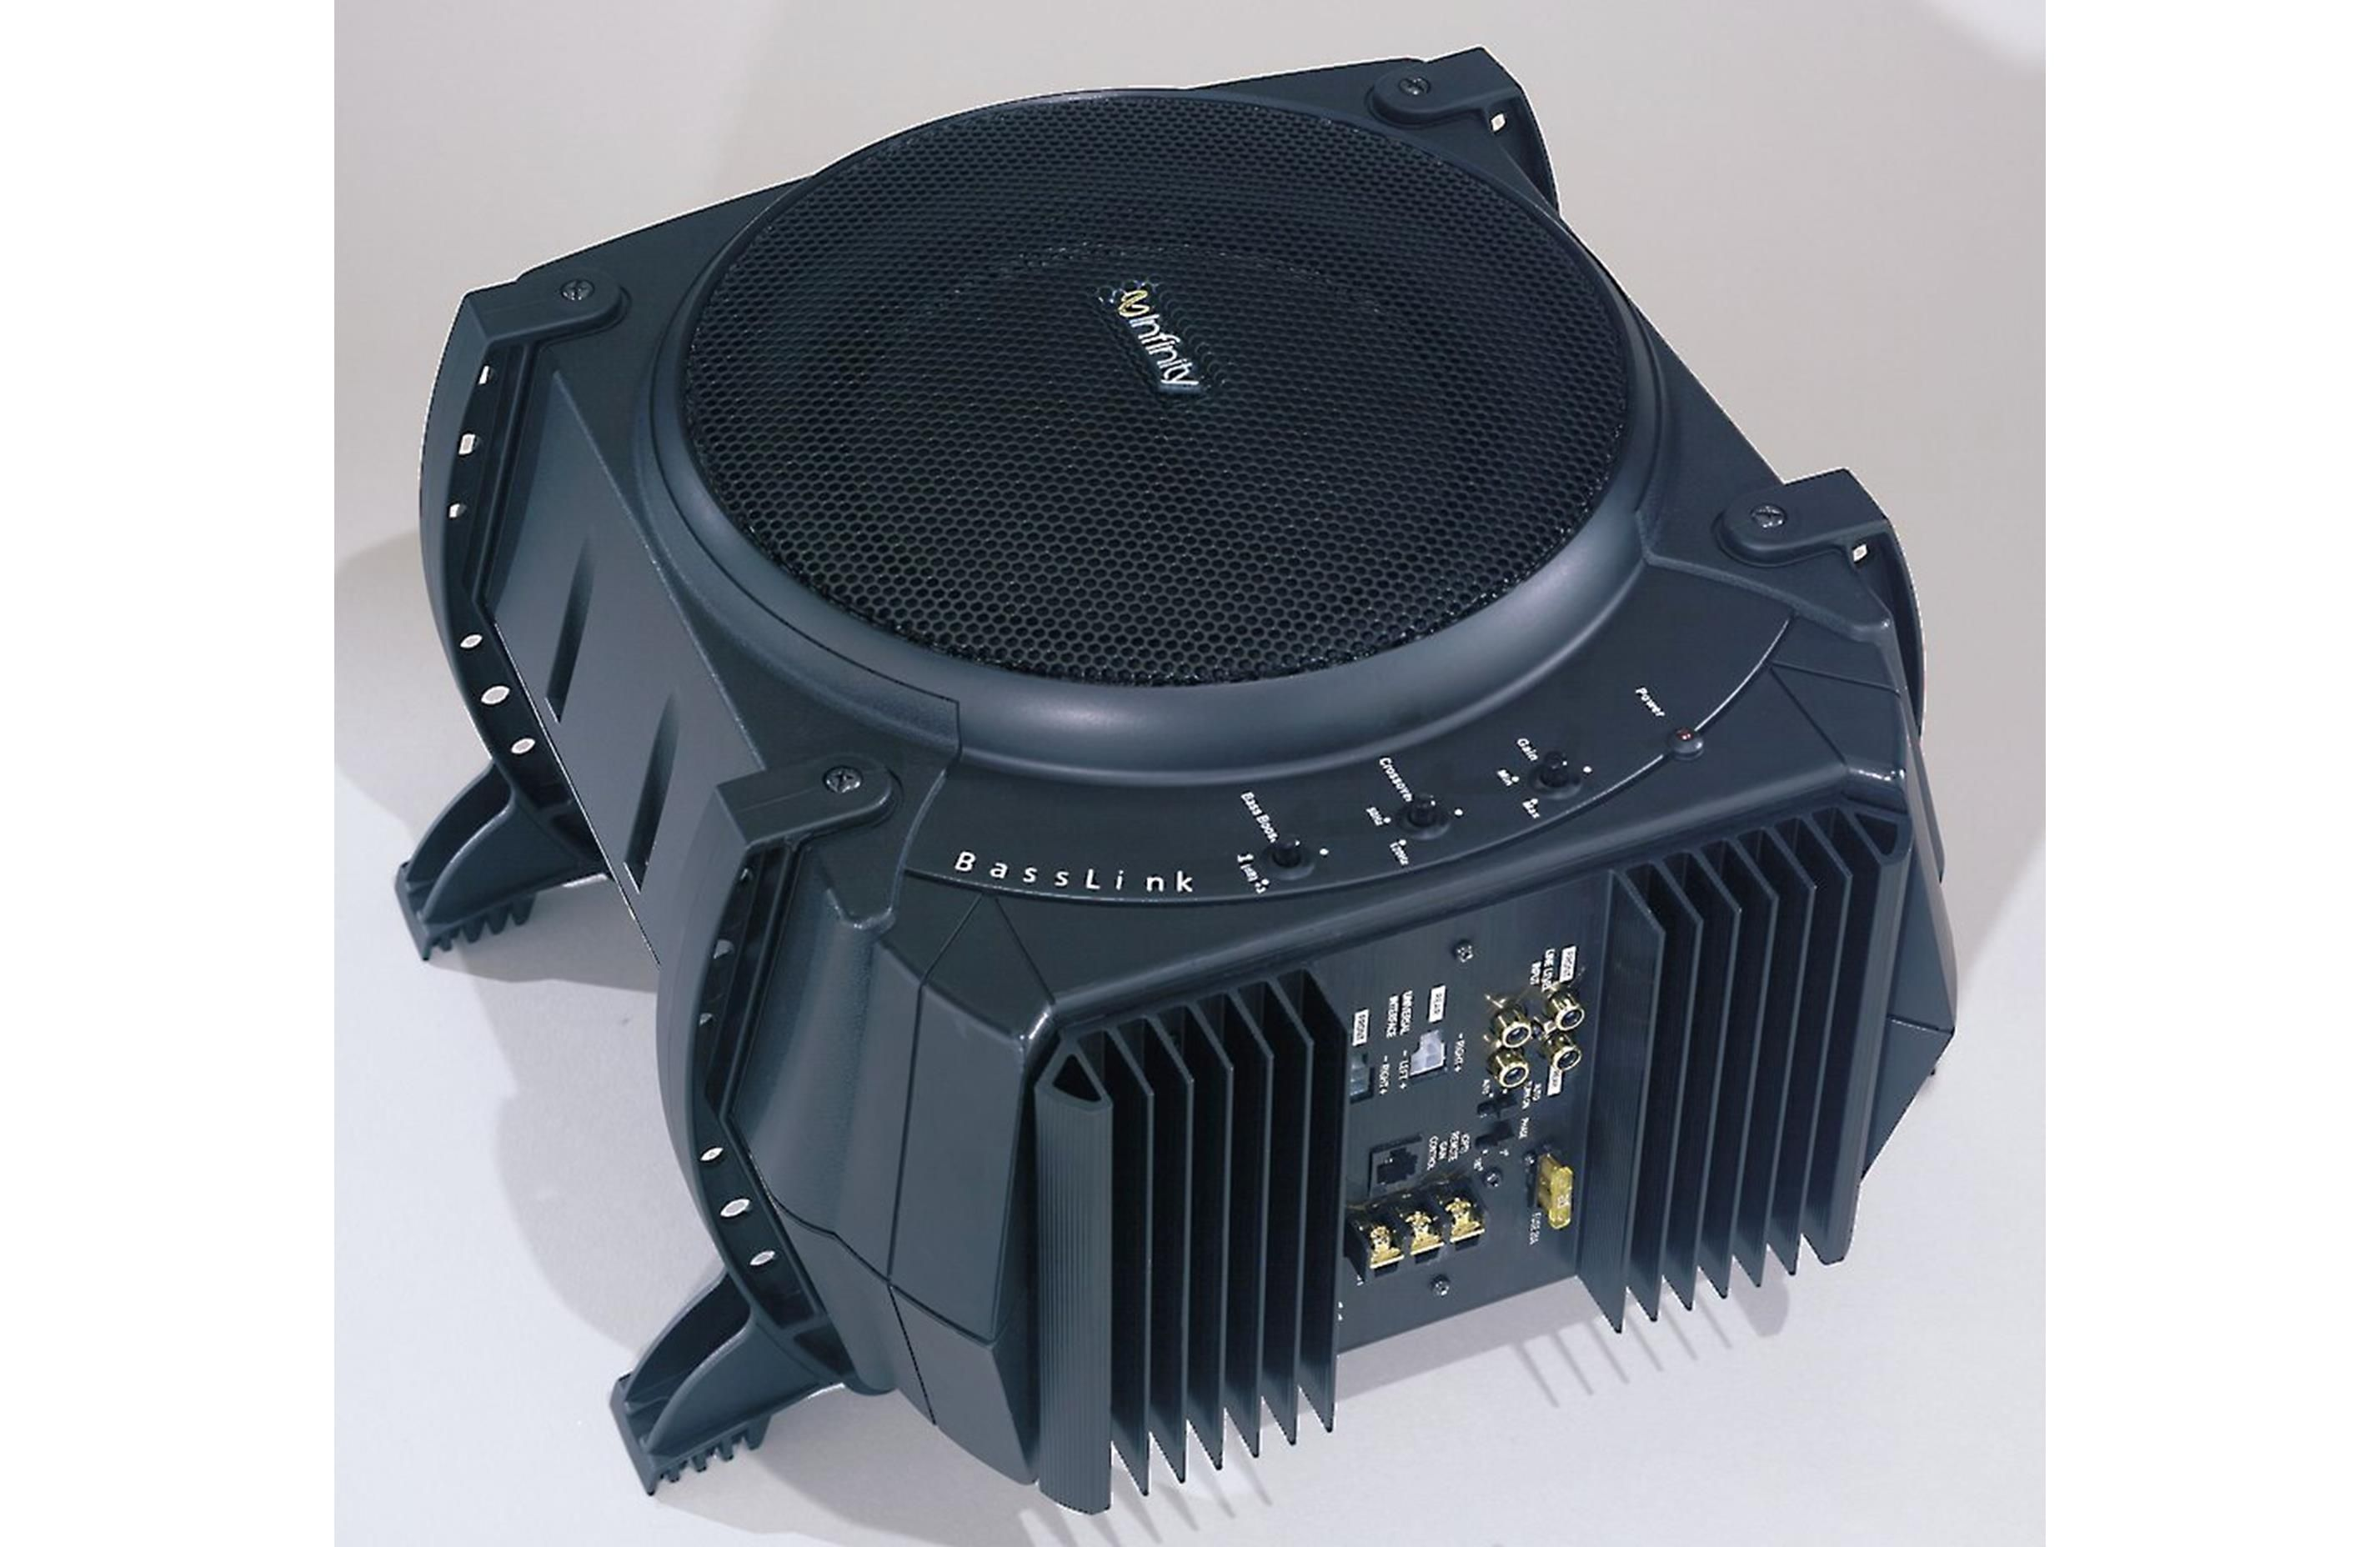 infinity 10 sub. infinity basslink powered subwoofer: 200 watts and a 10\ 10 sub